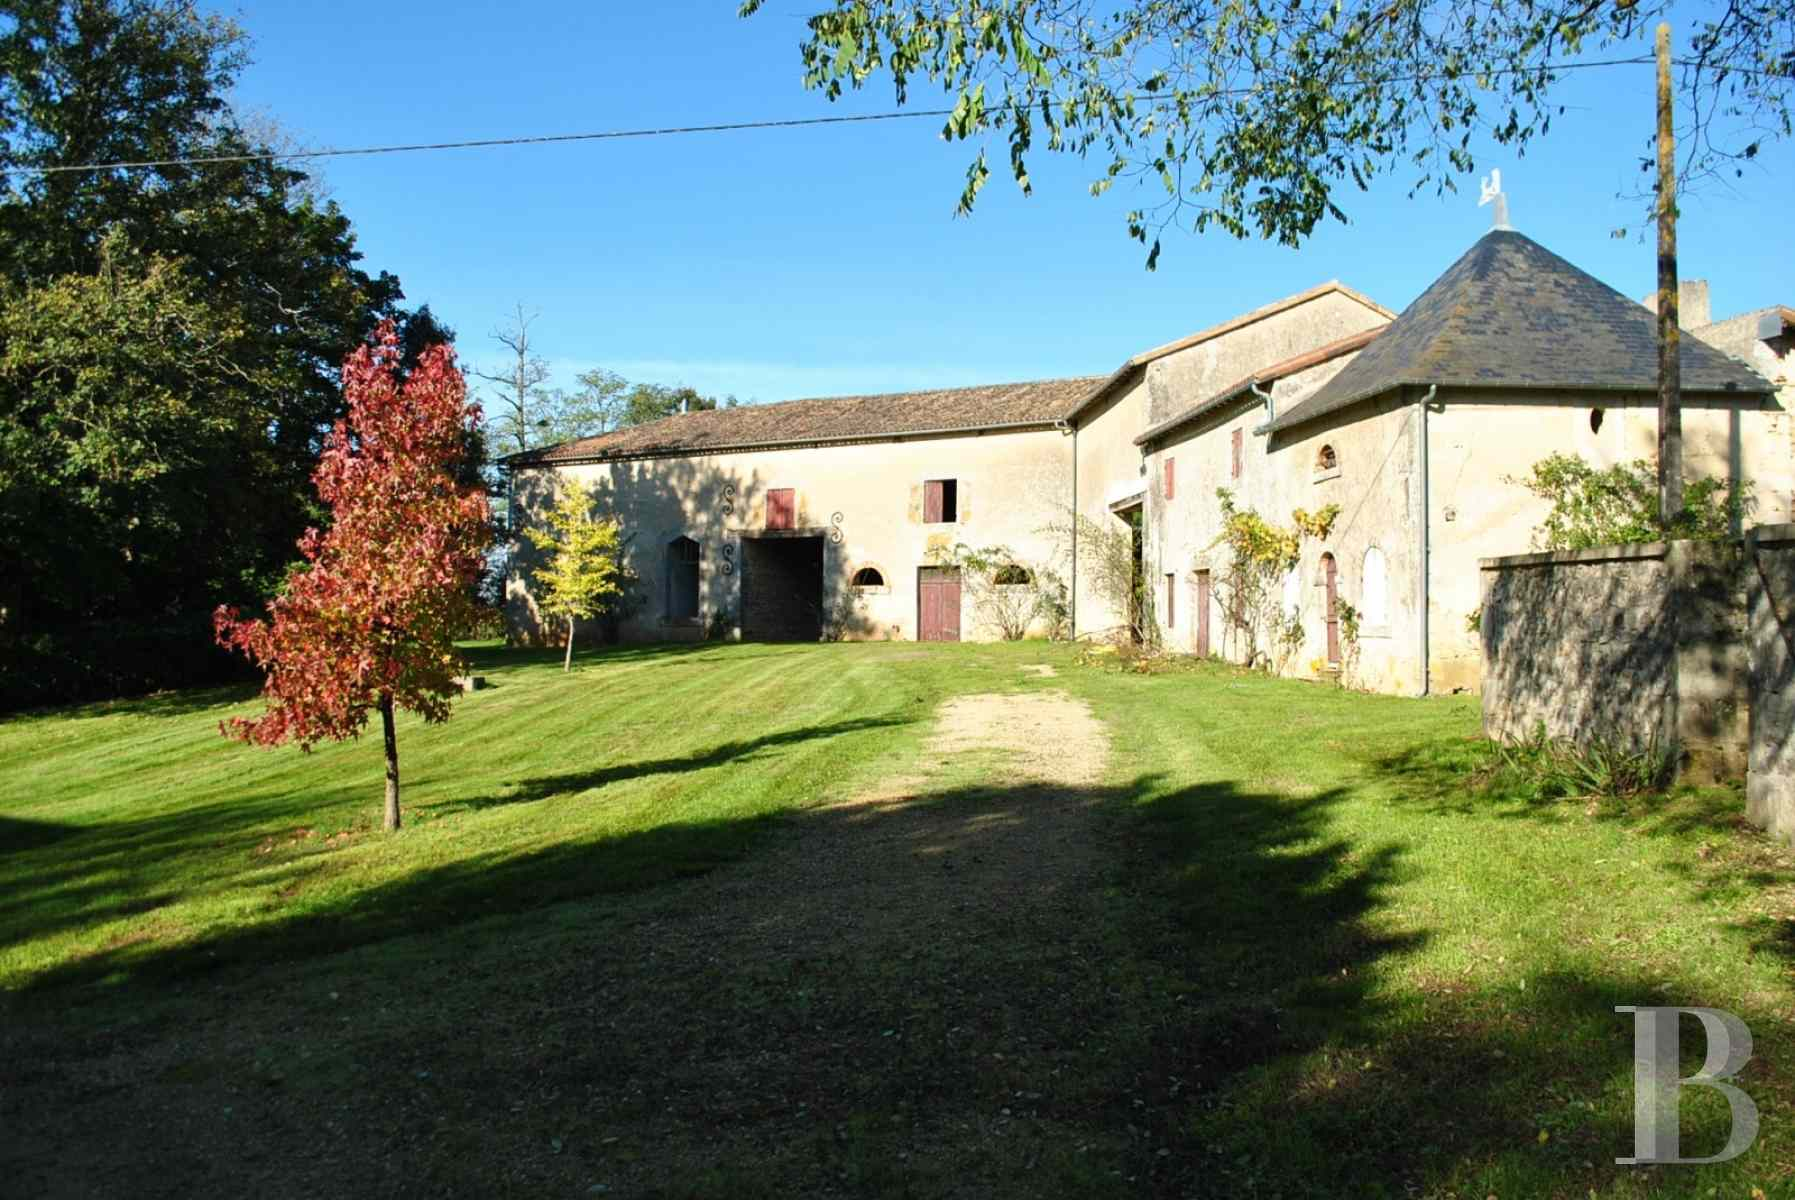 chateaux for sale France poitou charentes property outbuildings - 3 zoom